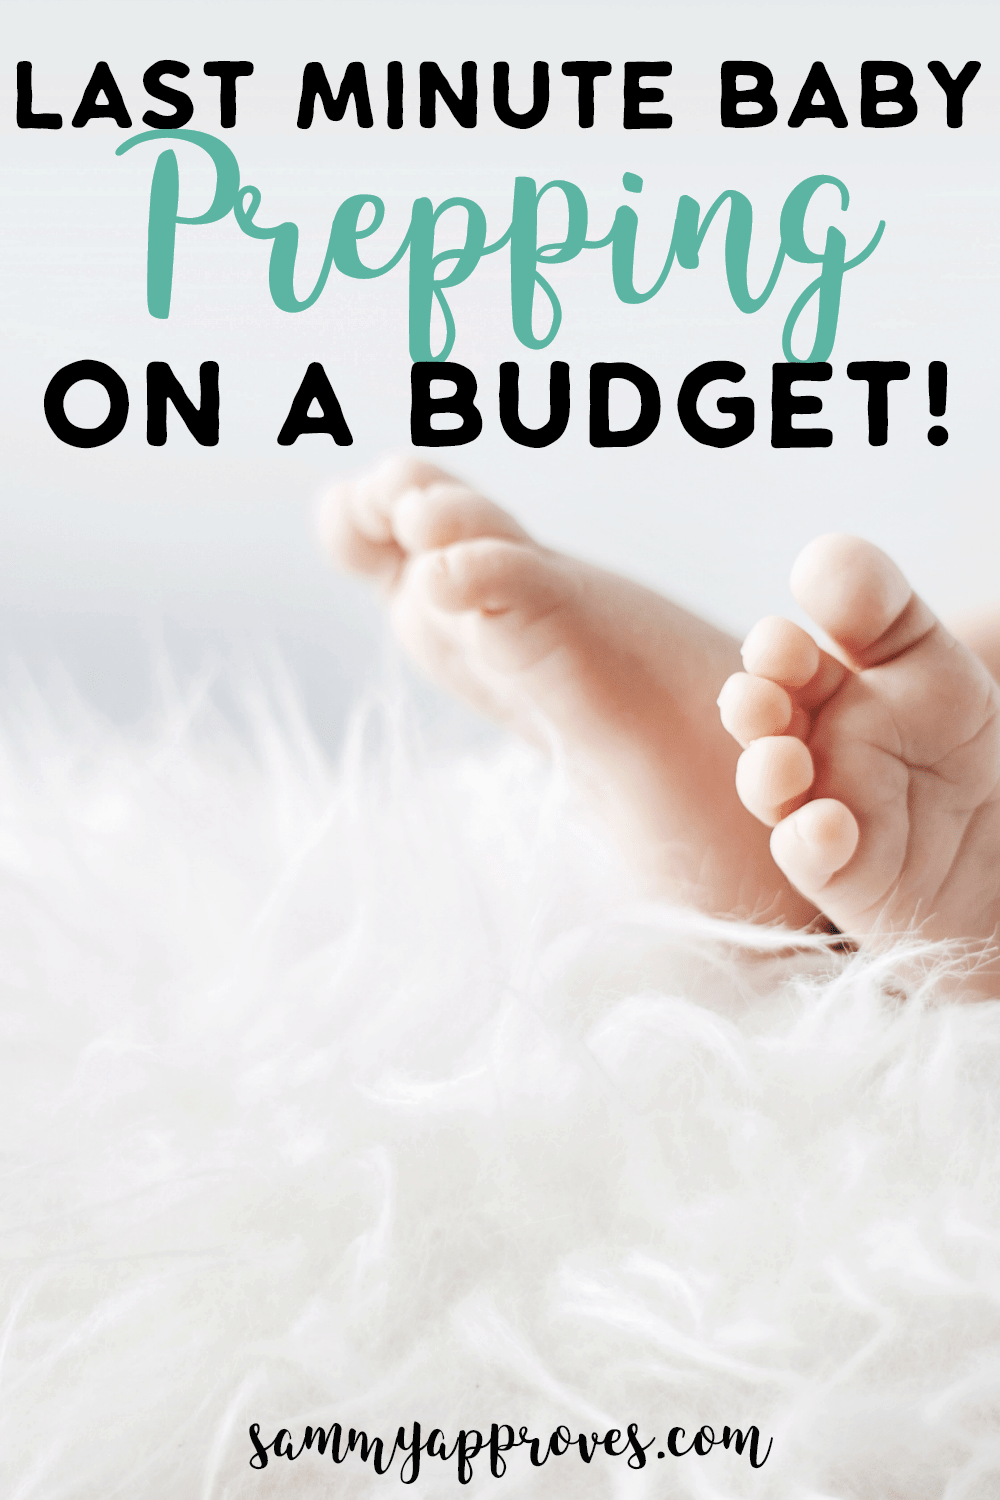 Last Minute Baby Prepping on a Budget